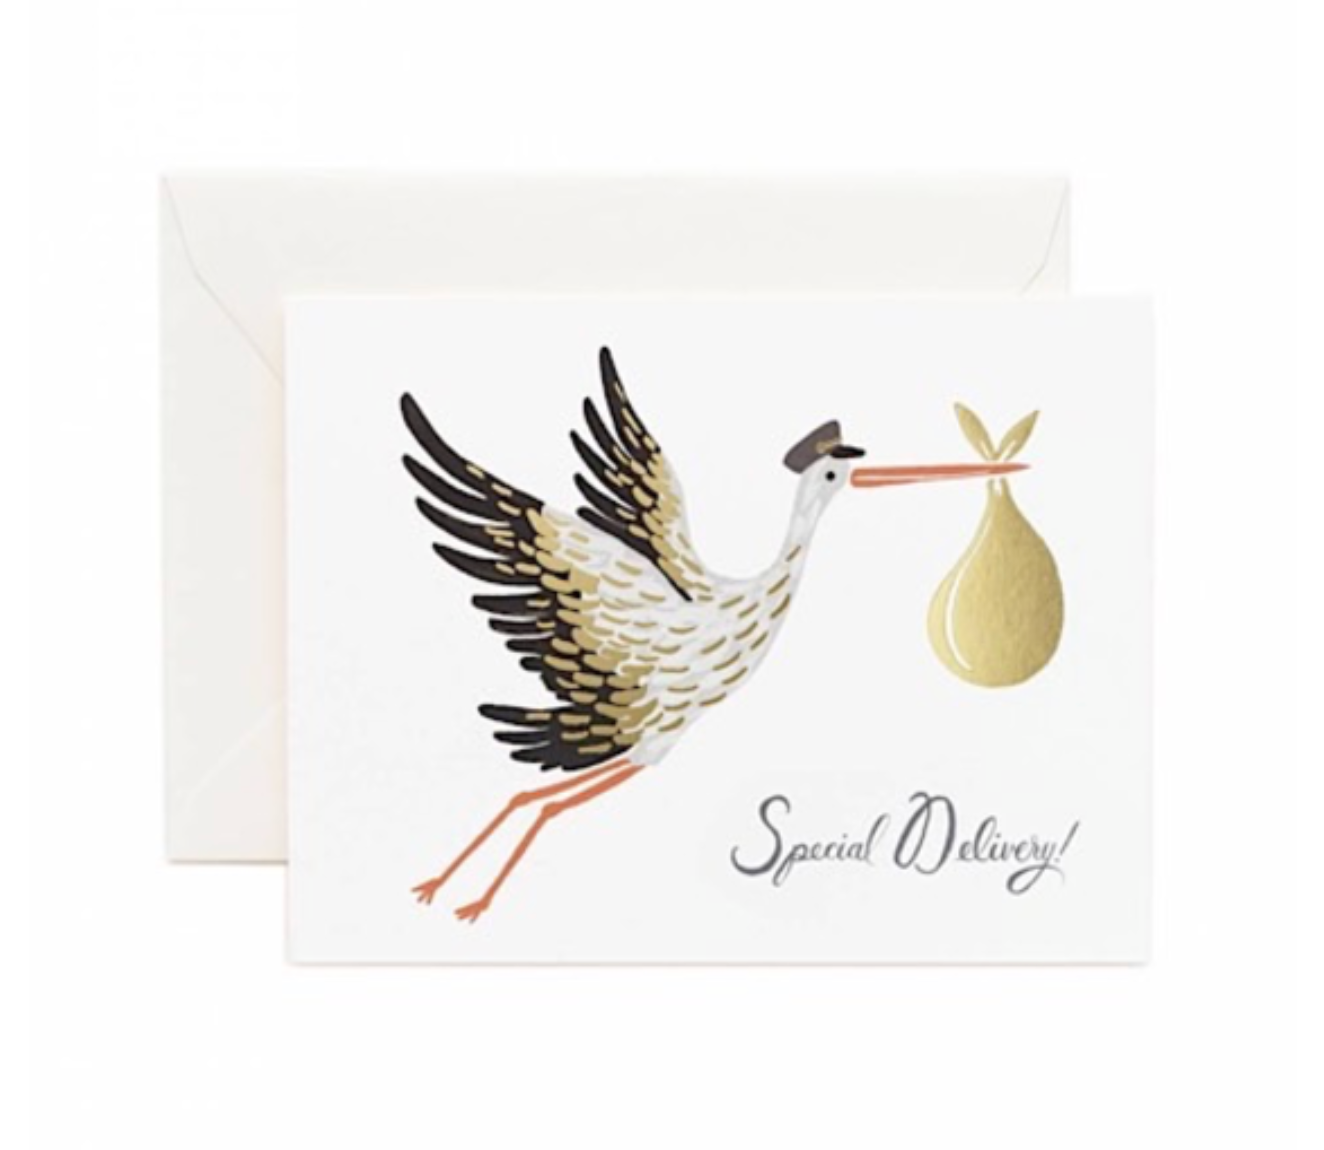 Special Delivery Card, Rifle Paper Co.